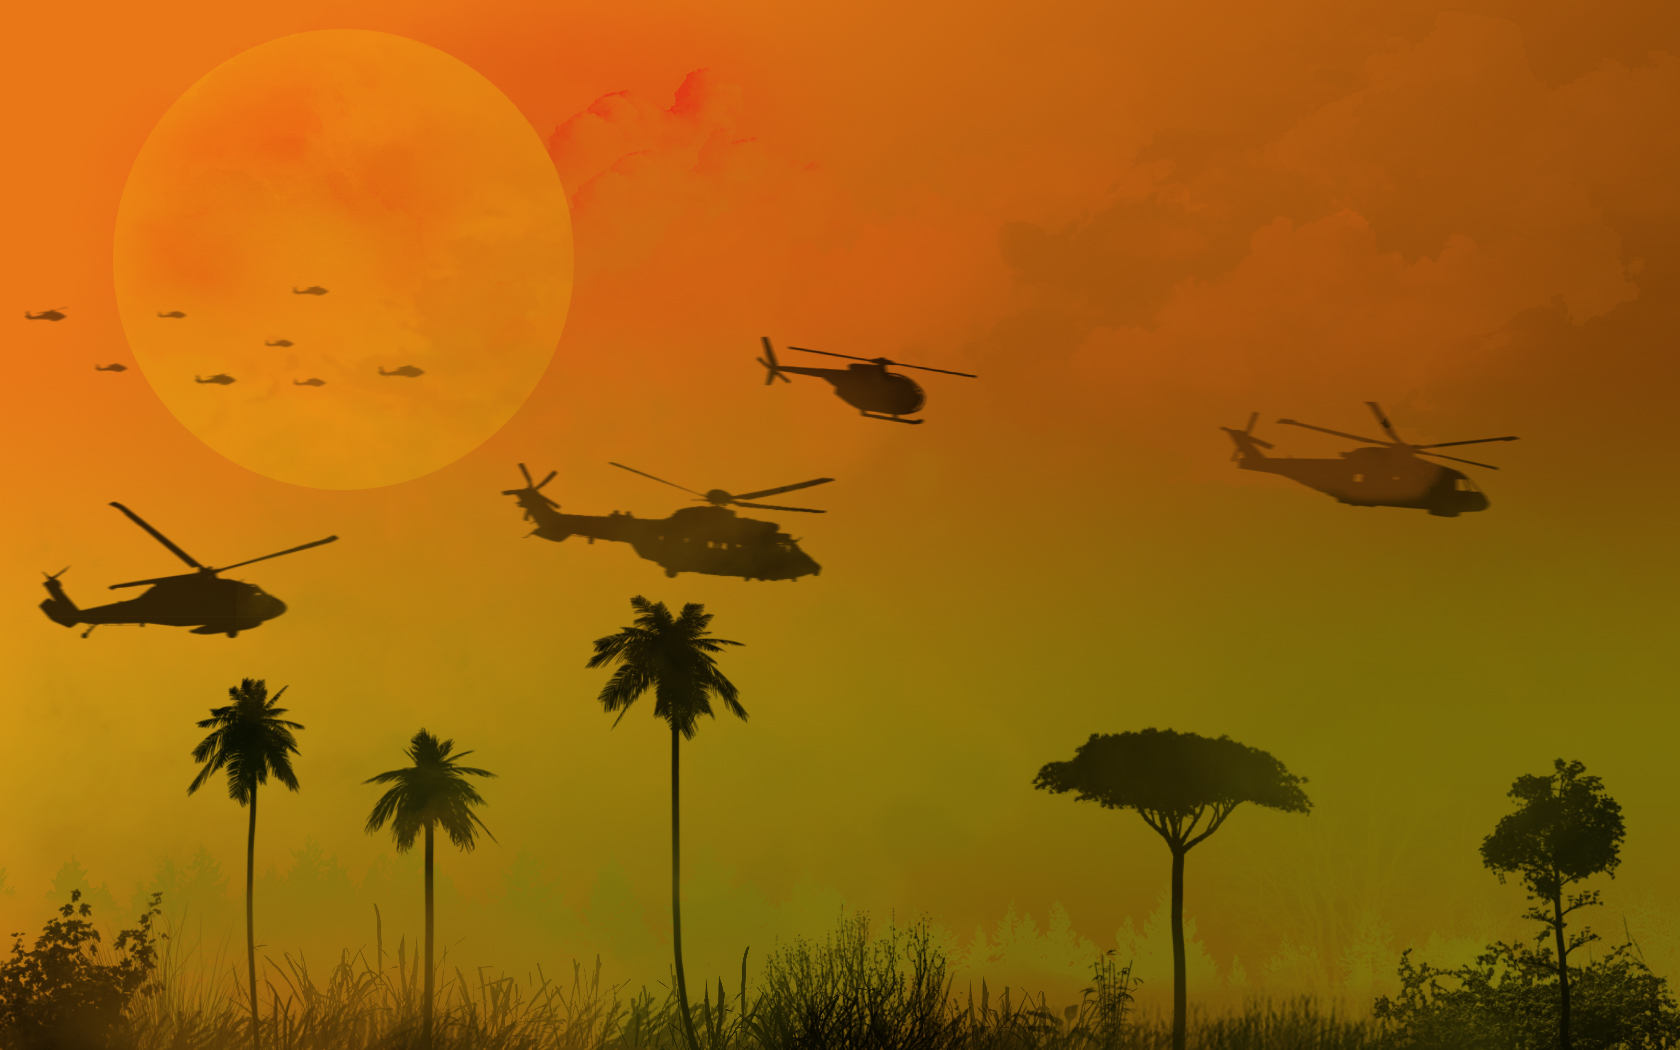 Apocalypse Now by Waingro 1680x1050